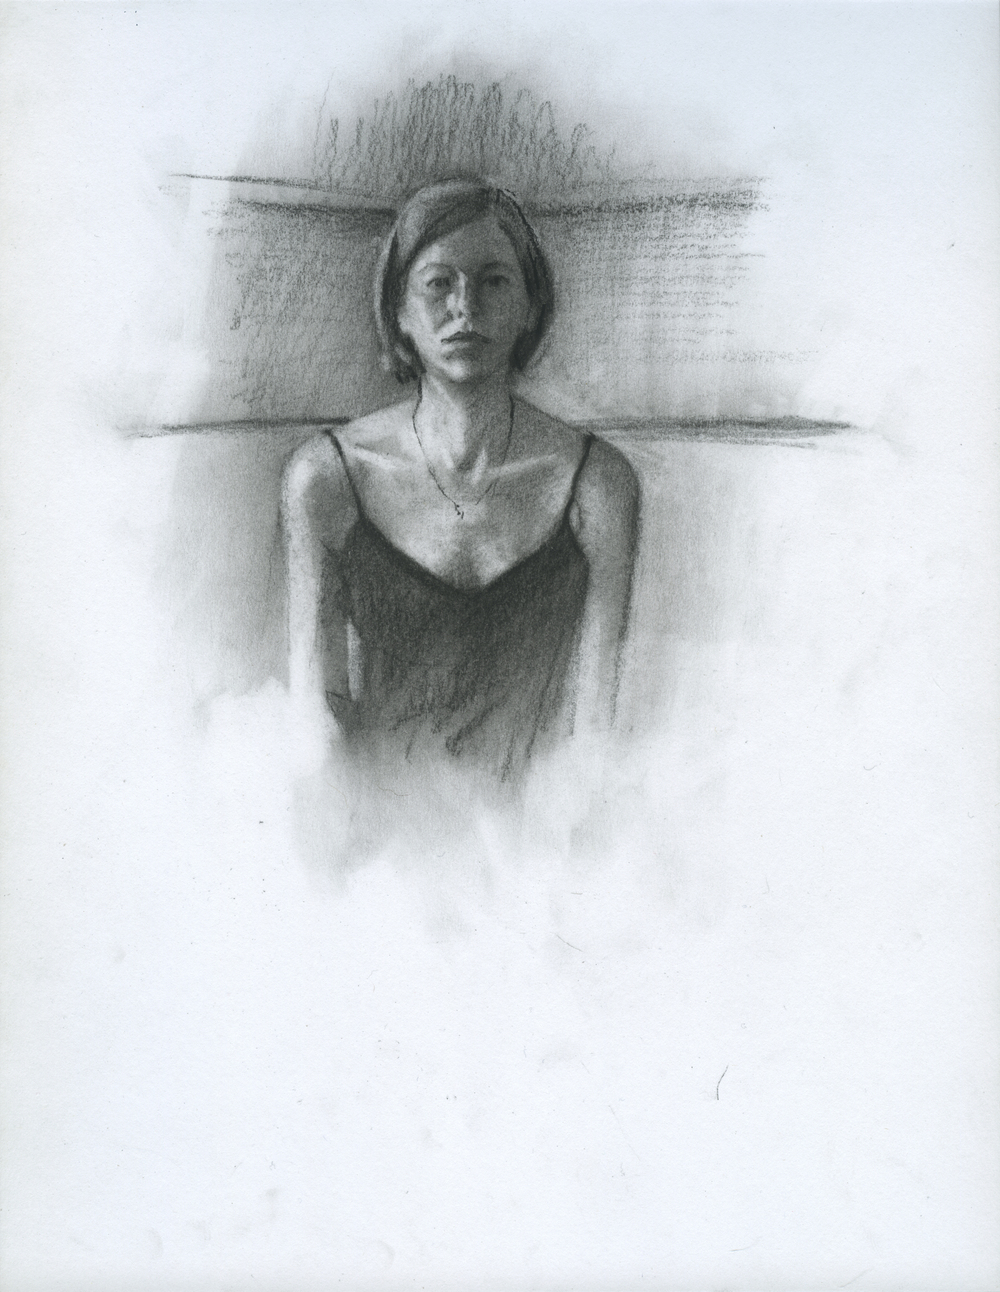 """Words Are Chosen Carefully, charcoal on paper, 11"""" x 8.5"""", 2014"""